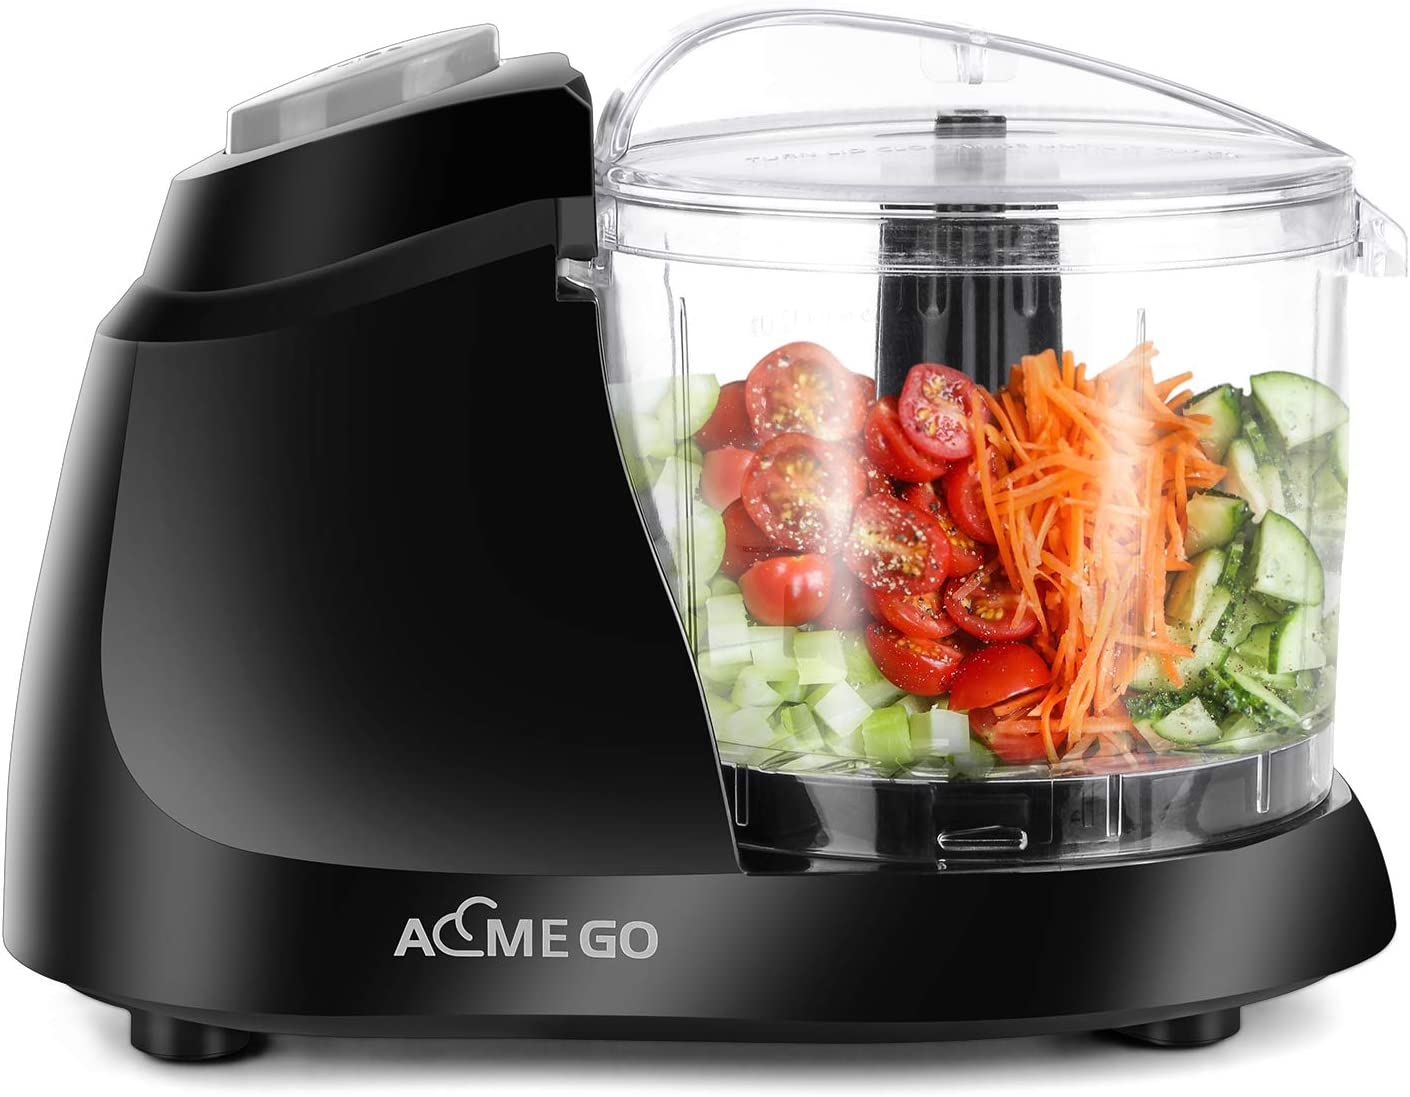 AEMEGO Mini Food Processor 1.5 Cup Meat &Vegetable Electric Food Chopper Detachable Small Food Grinder with Stainless Steel Blade for Dicing Mincing Blending Puree